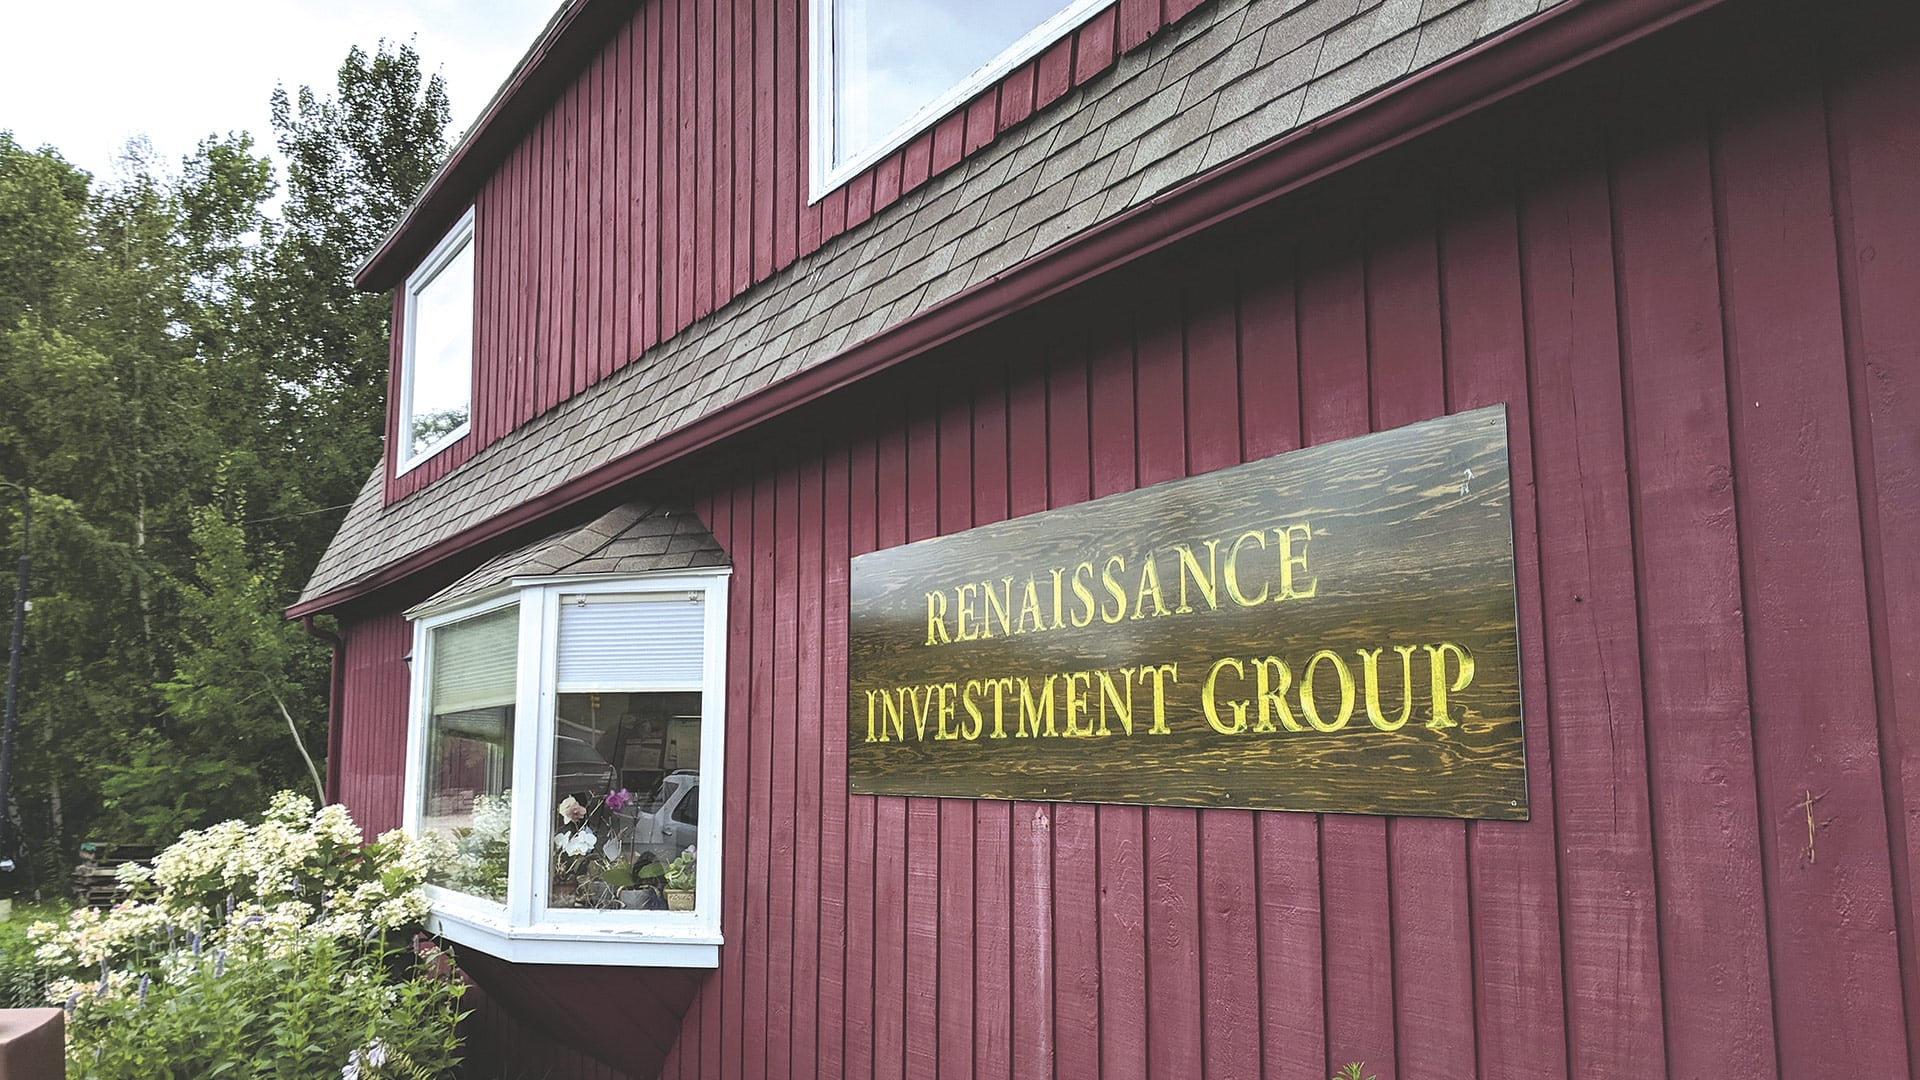 The firm boasts a broad client base in and around the Berkshires, but also across the U.S.